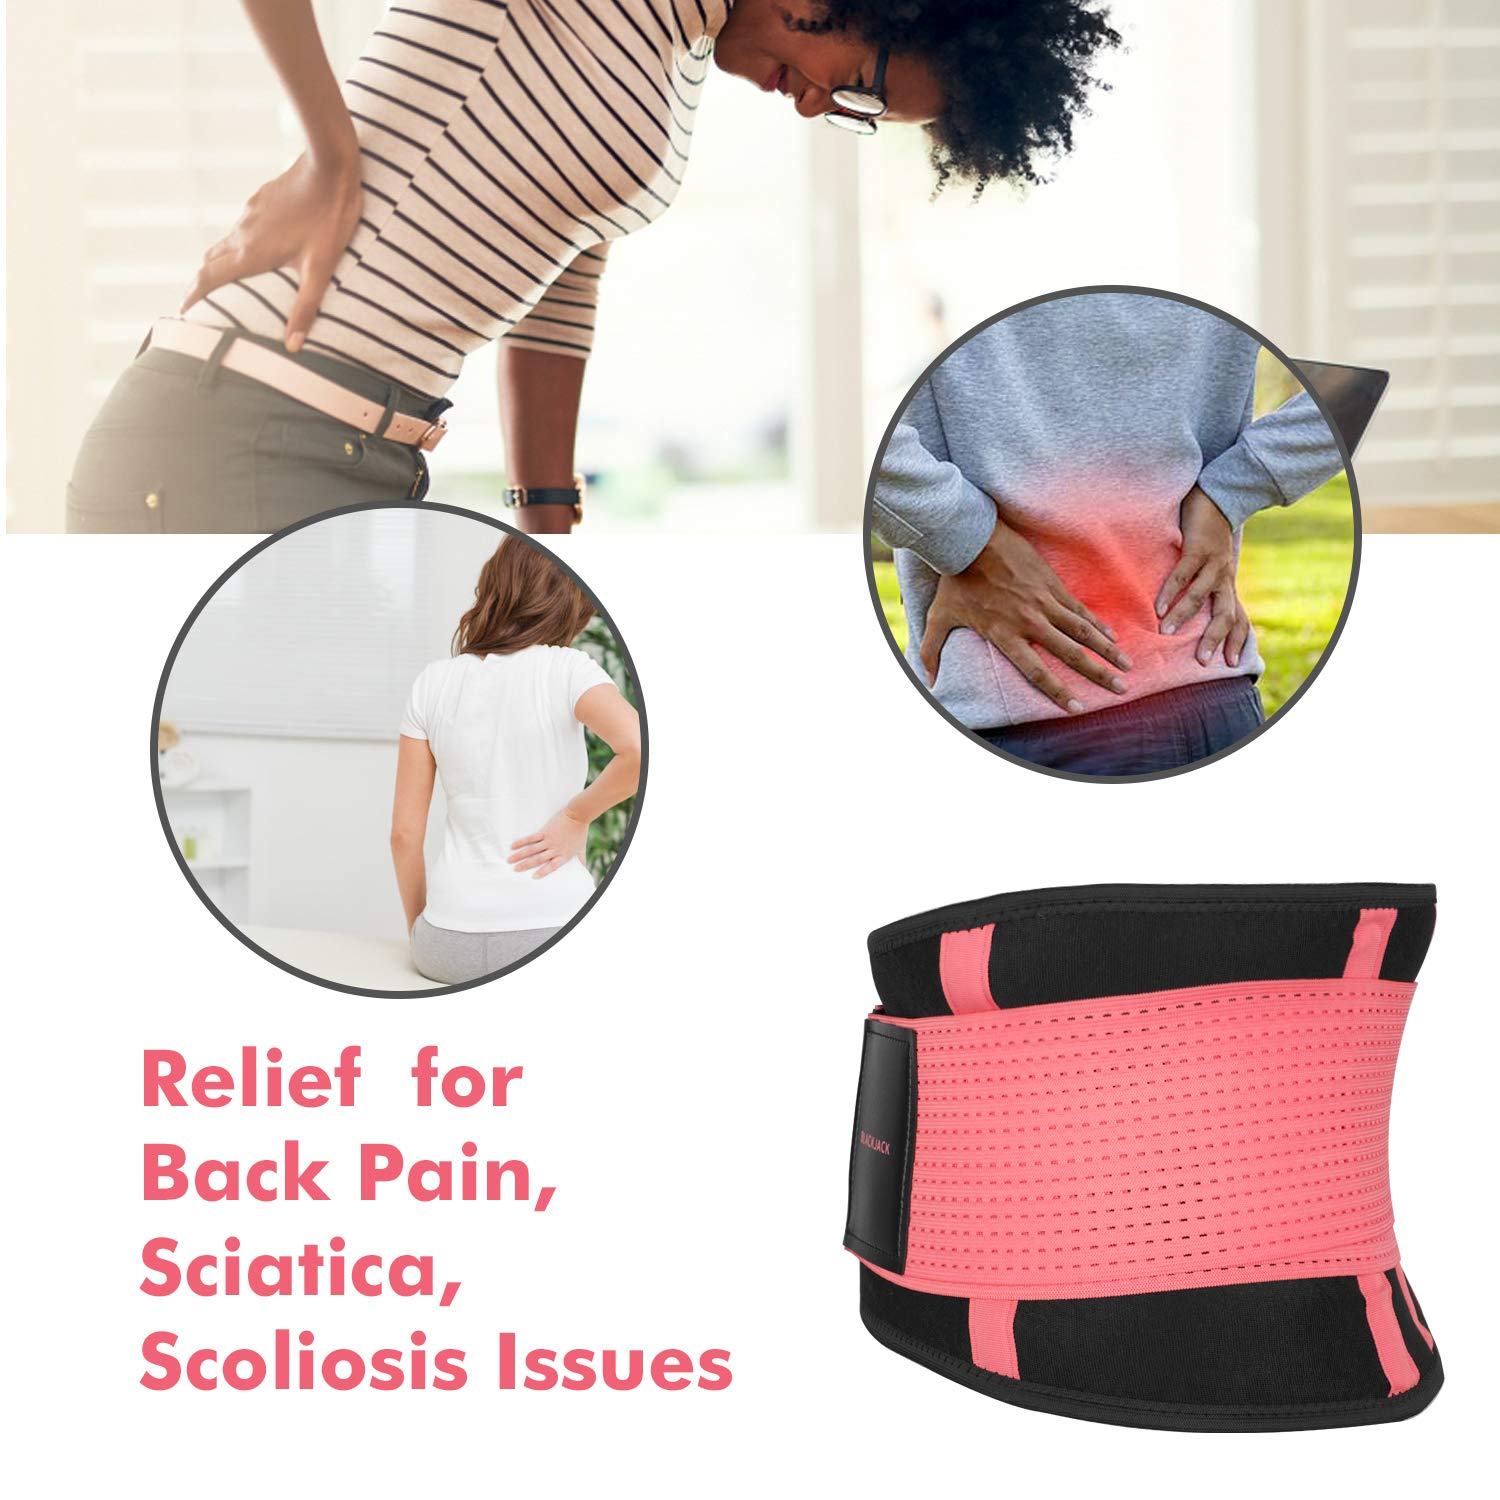 Scoliosis with Breathable Mesh Design Sciatica BLACK JACK K K Waist Trainer Belt for Women Back Brace Support Waist Cincher/ Trimmer for Back Pain